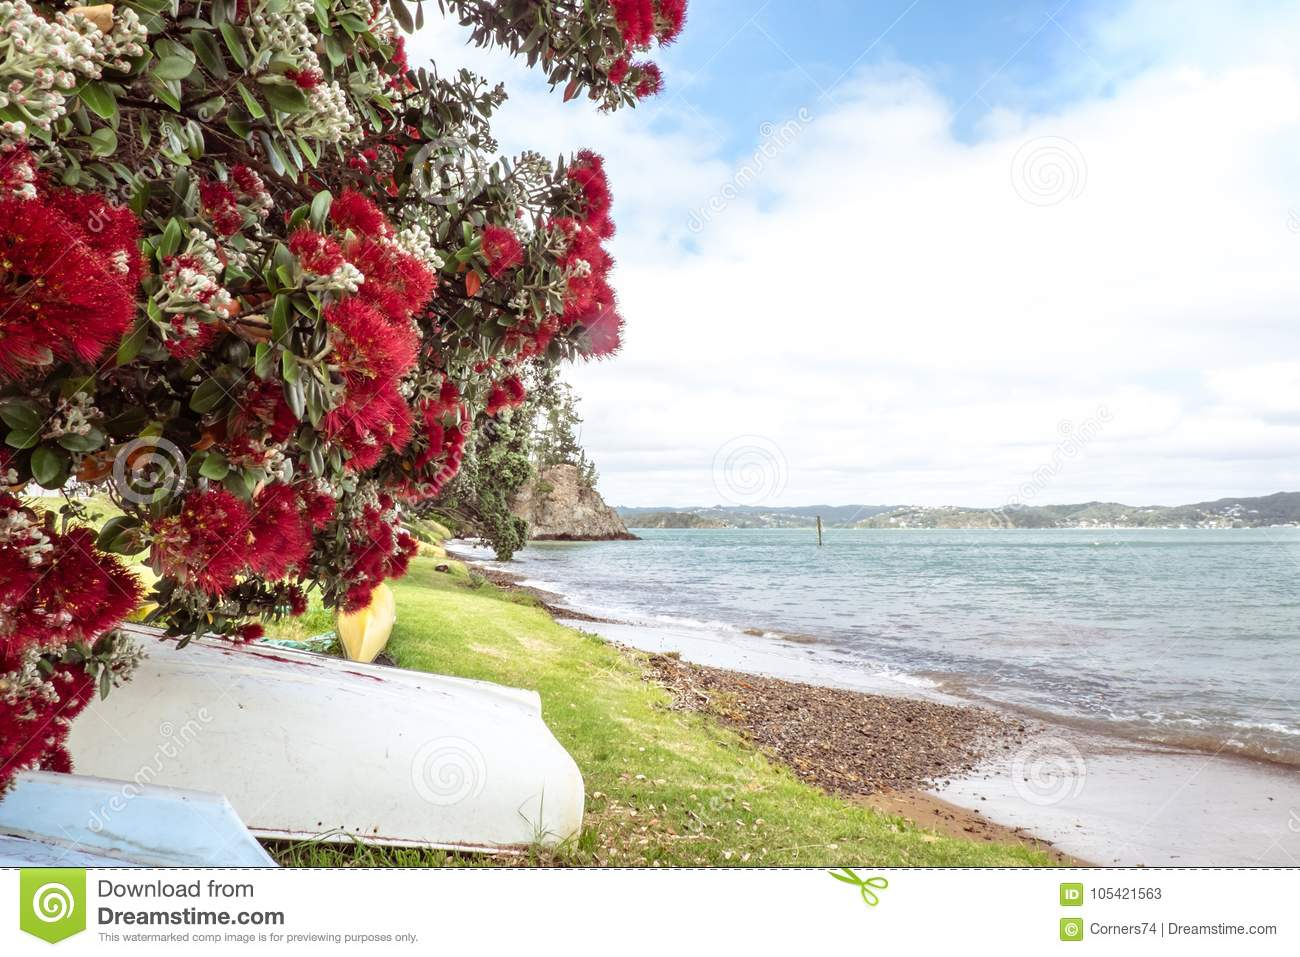 Flowering red Pohutukawa is known as the New Zealand Christmas t